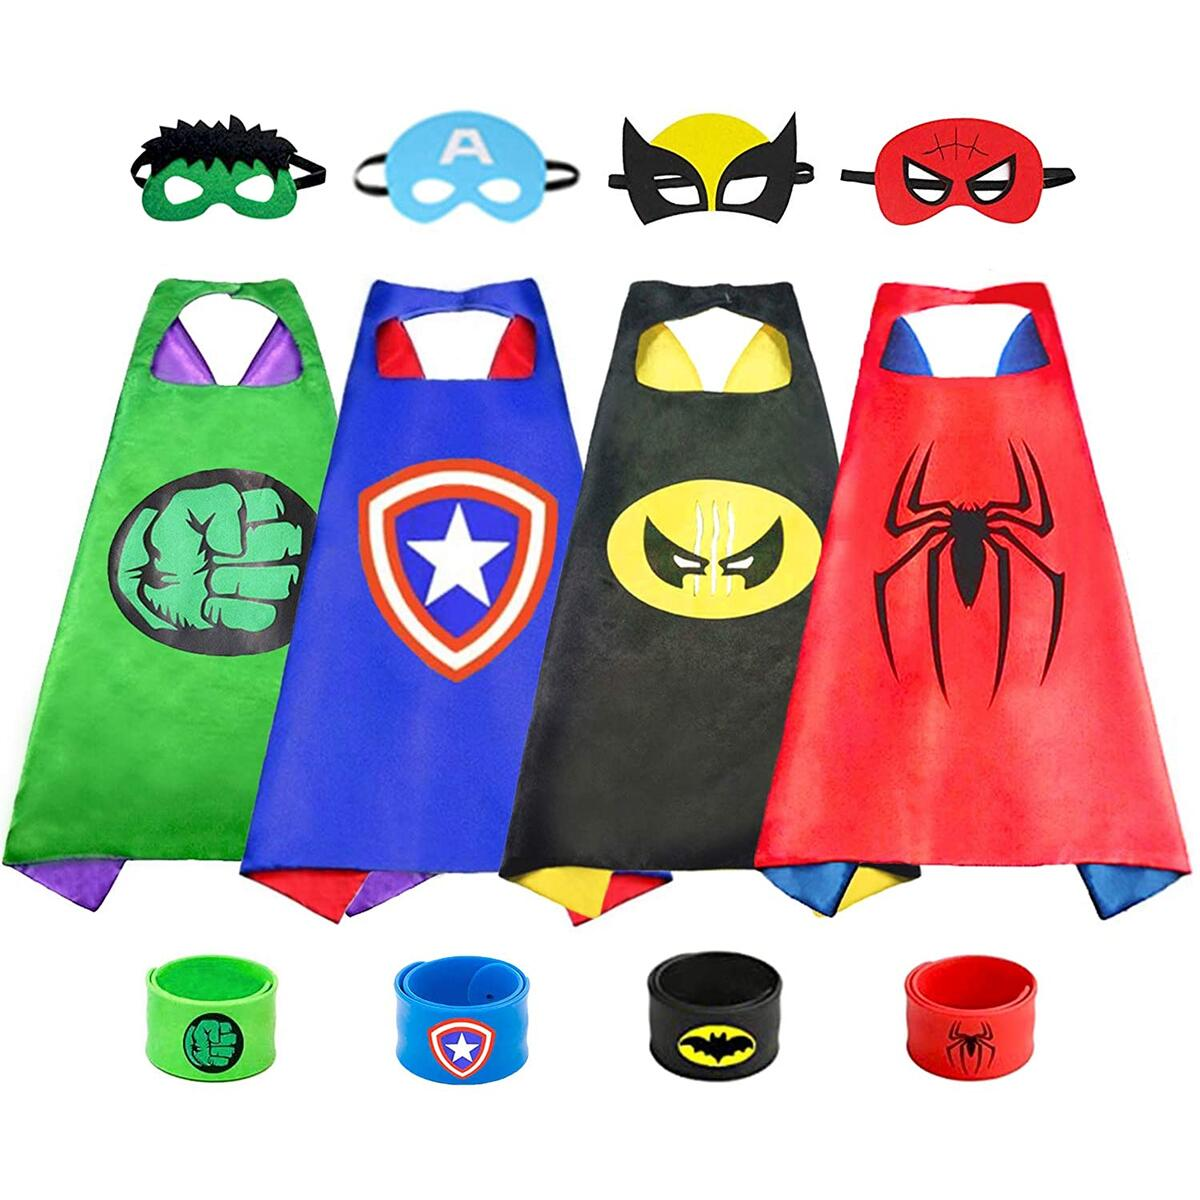 Superhero Capes with Masks for Kids Halloween Cosplay Dress Up Costumes Double Satin Cape Superhero Toys for Boys Gifts